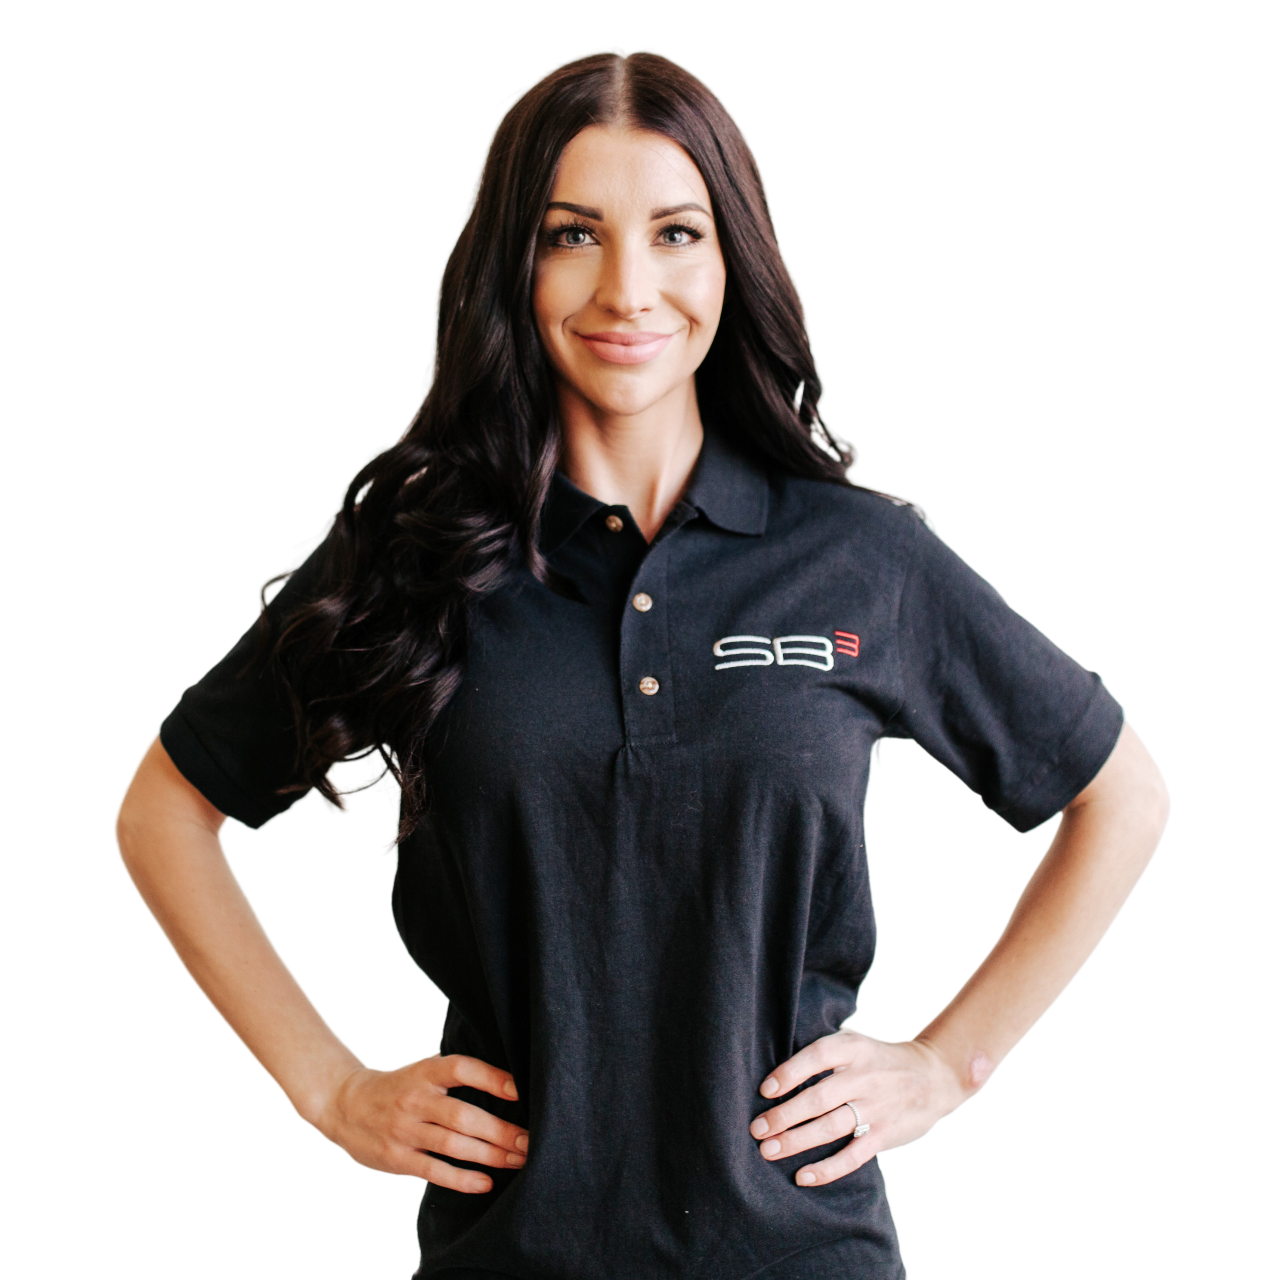 Meet SB3 Coating International INC's New Brand Ambassador Amber Balcaen